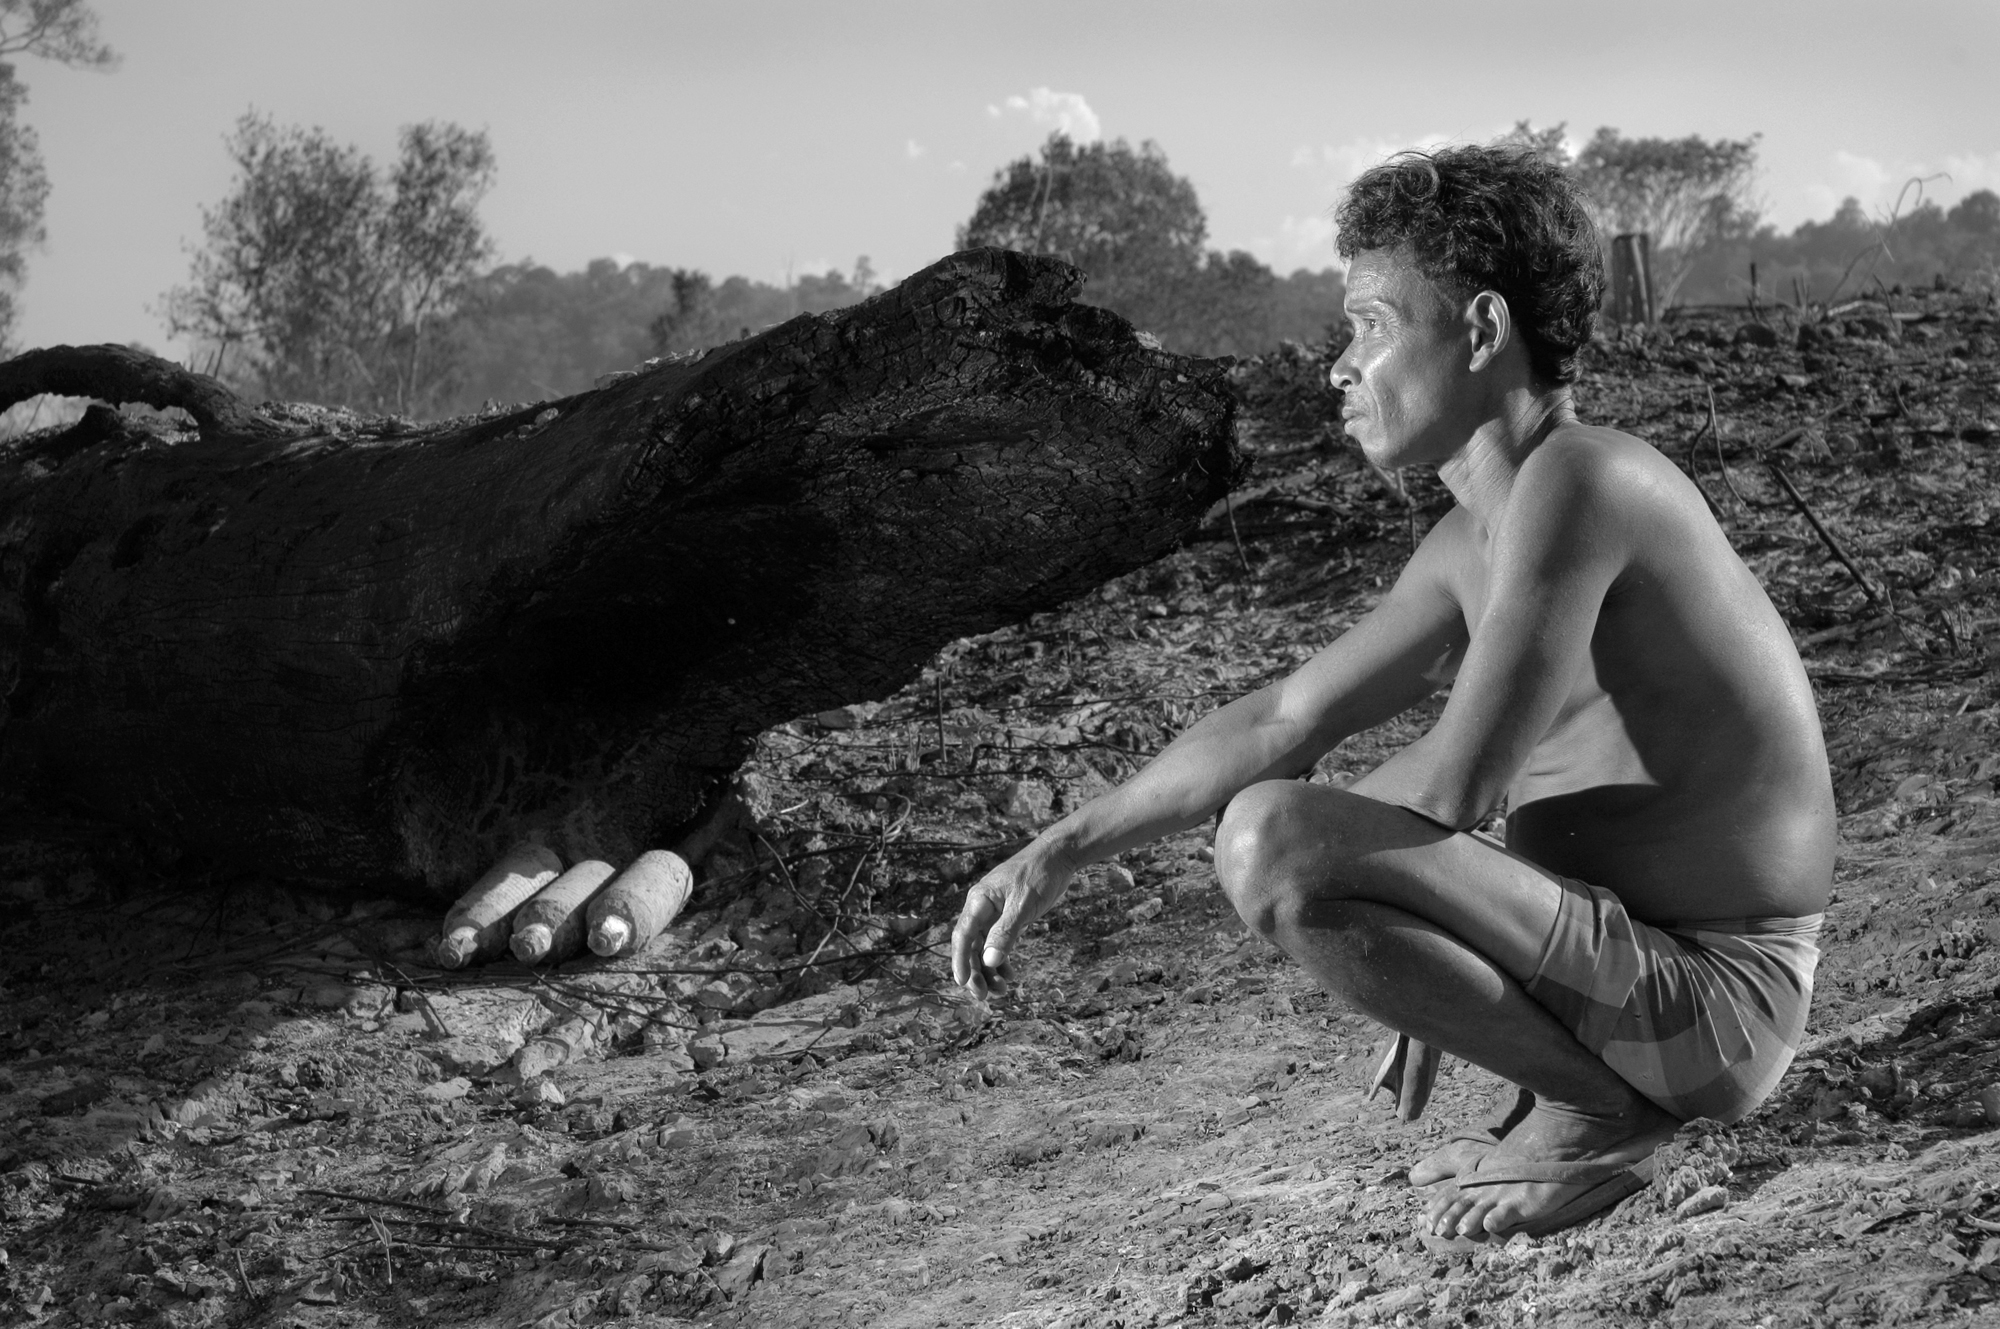 Tao Lee squats next to a clutch of American cluster bombs in southern Laos.